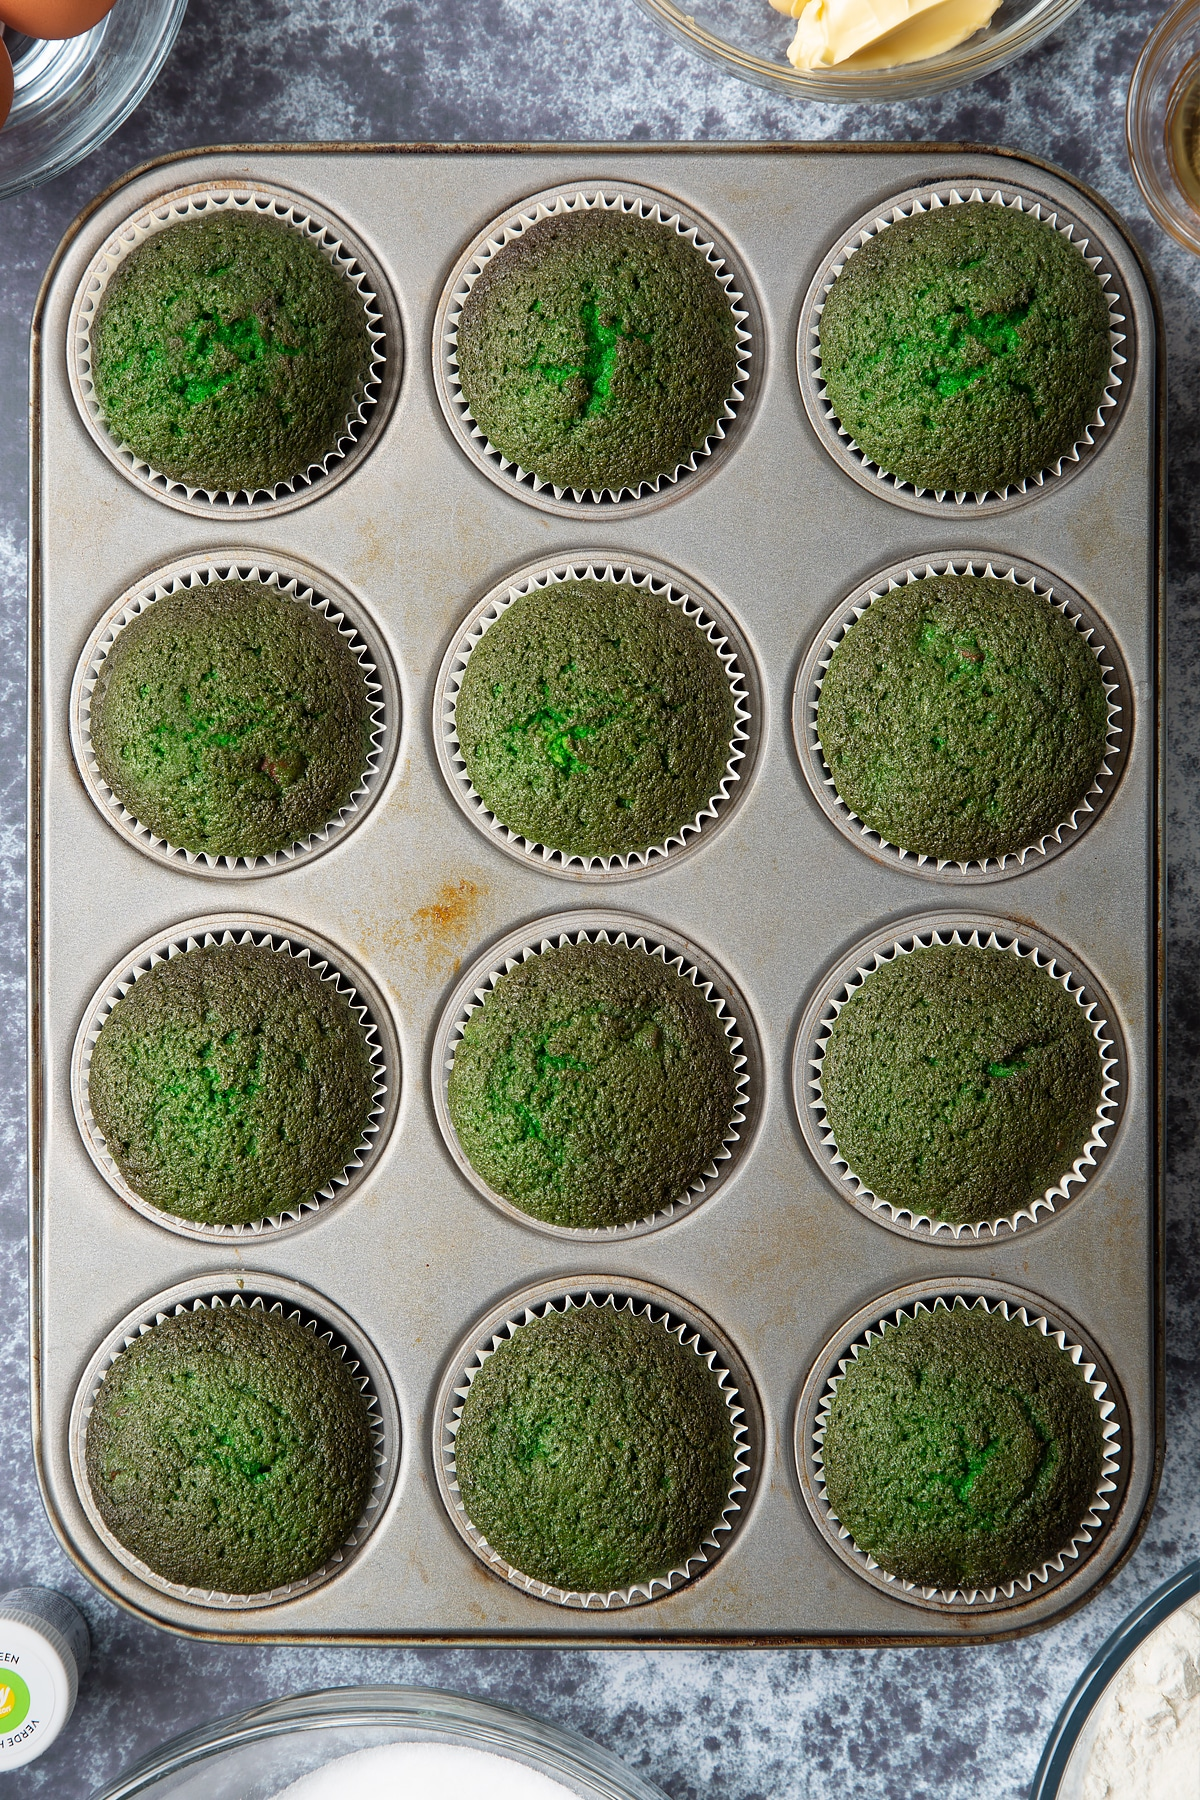 Cooked green vanilla chocolate chip cupcakes in a 12 hole muffin tray. Ingredients to make green monster cakes surround the tray.